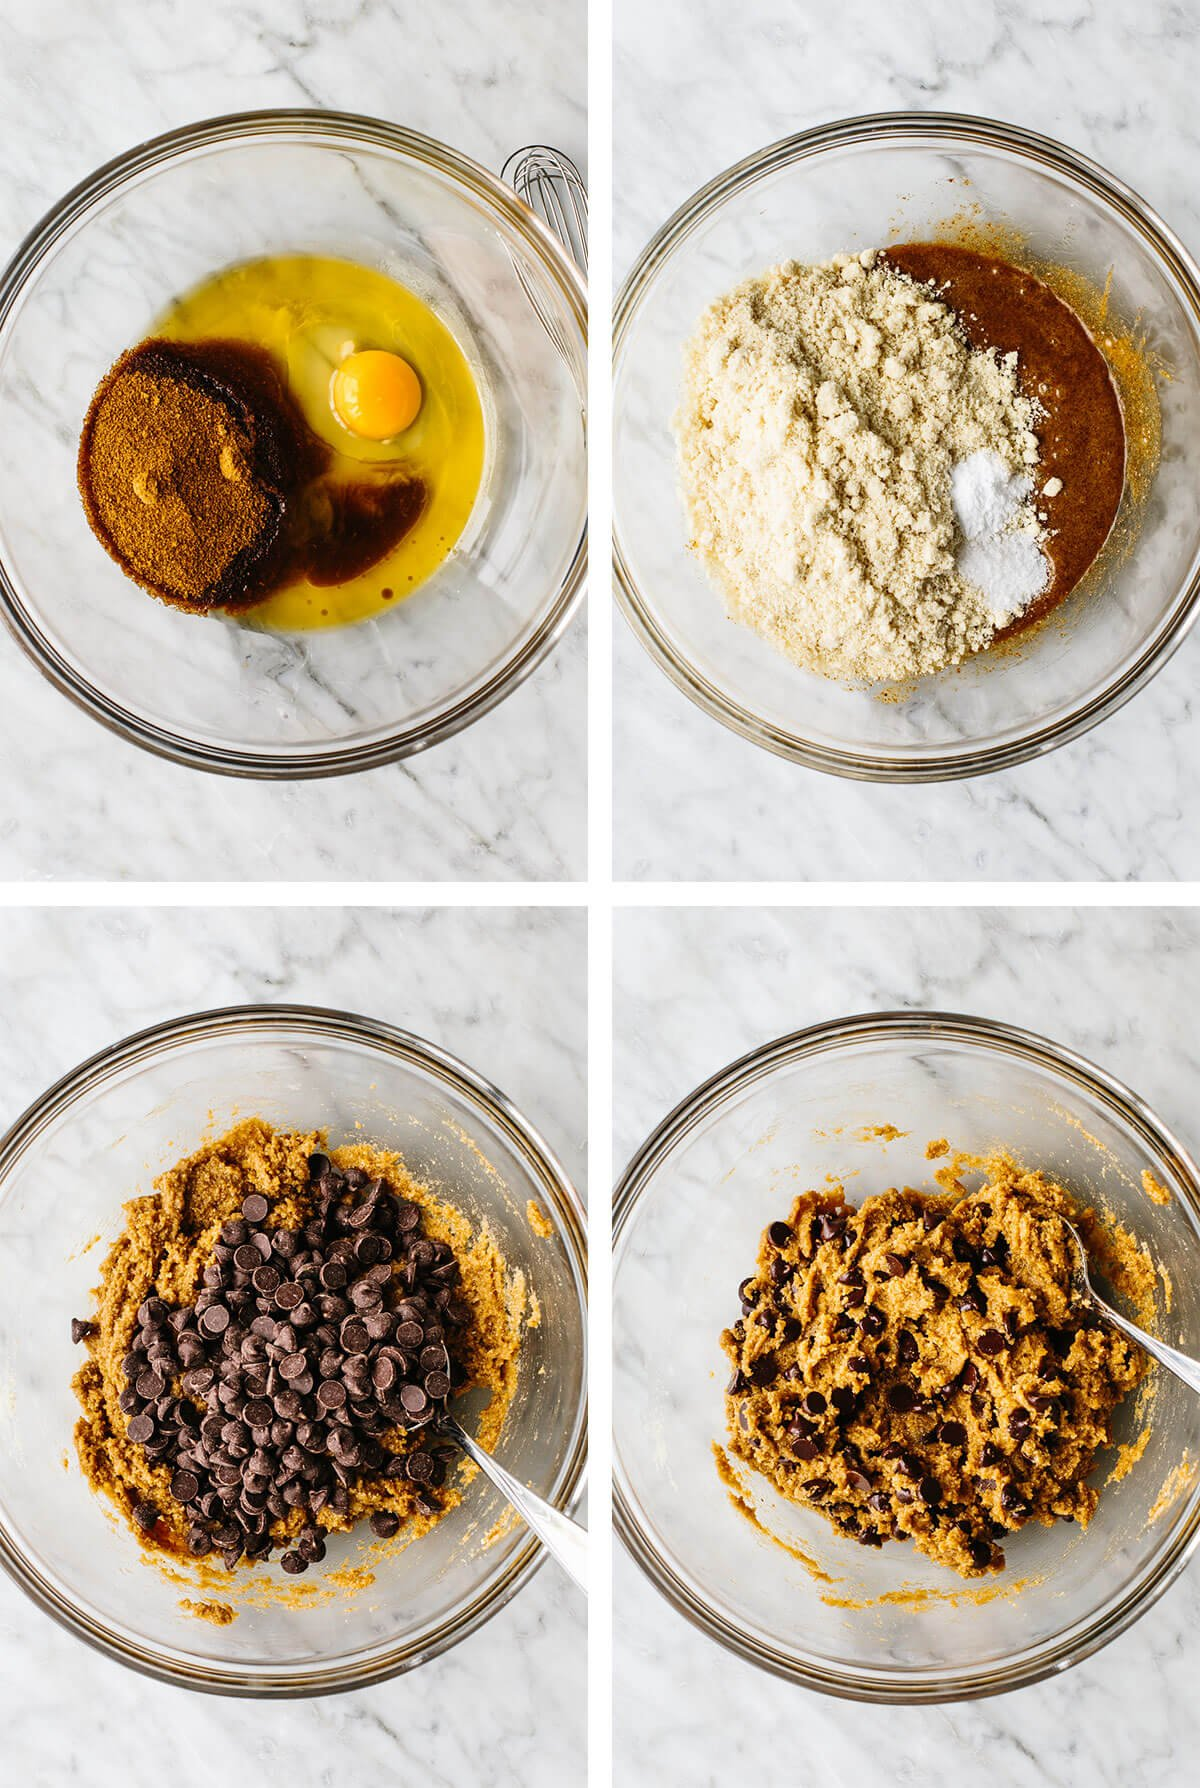 Mixing gluten-free chocolate chip cookie ingredients in a bowl.